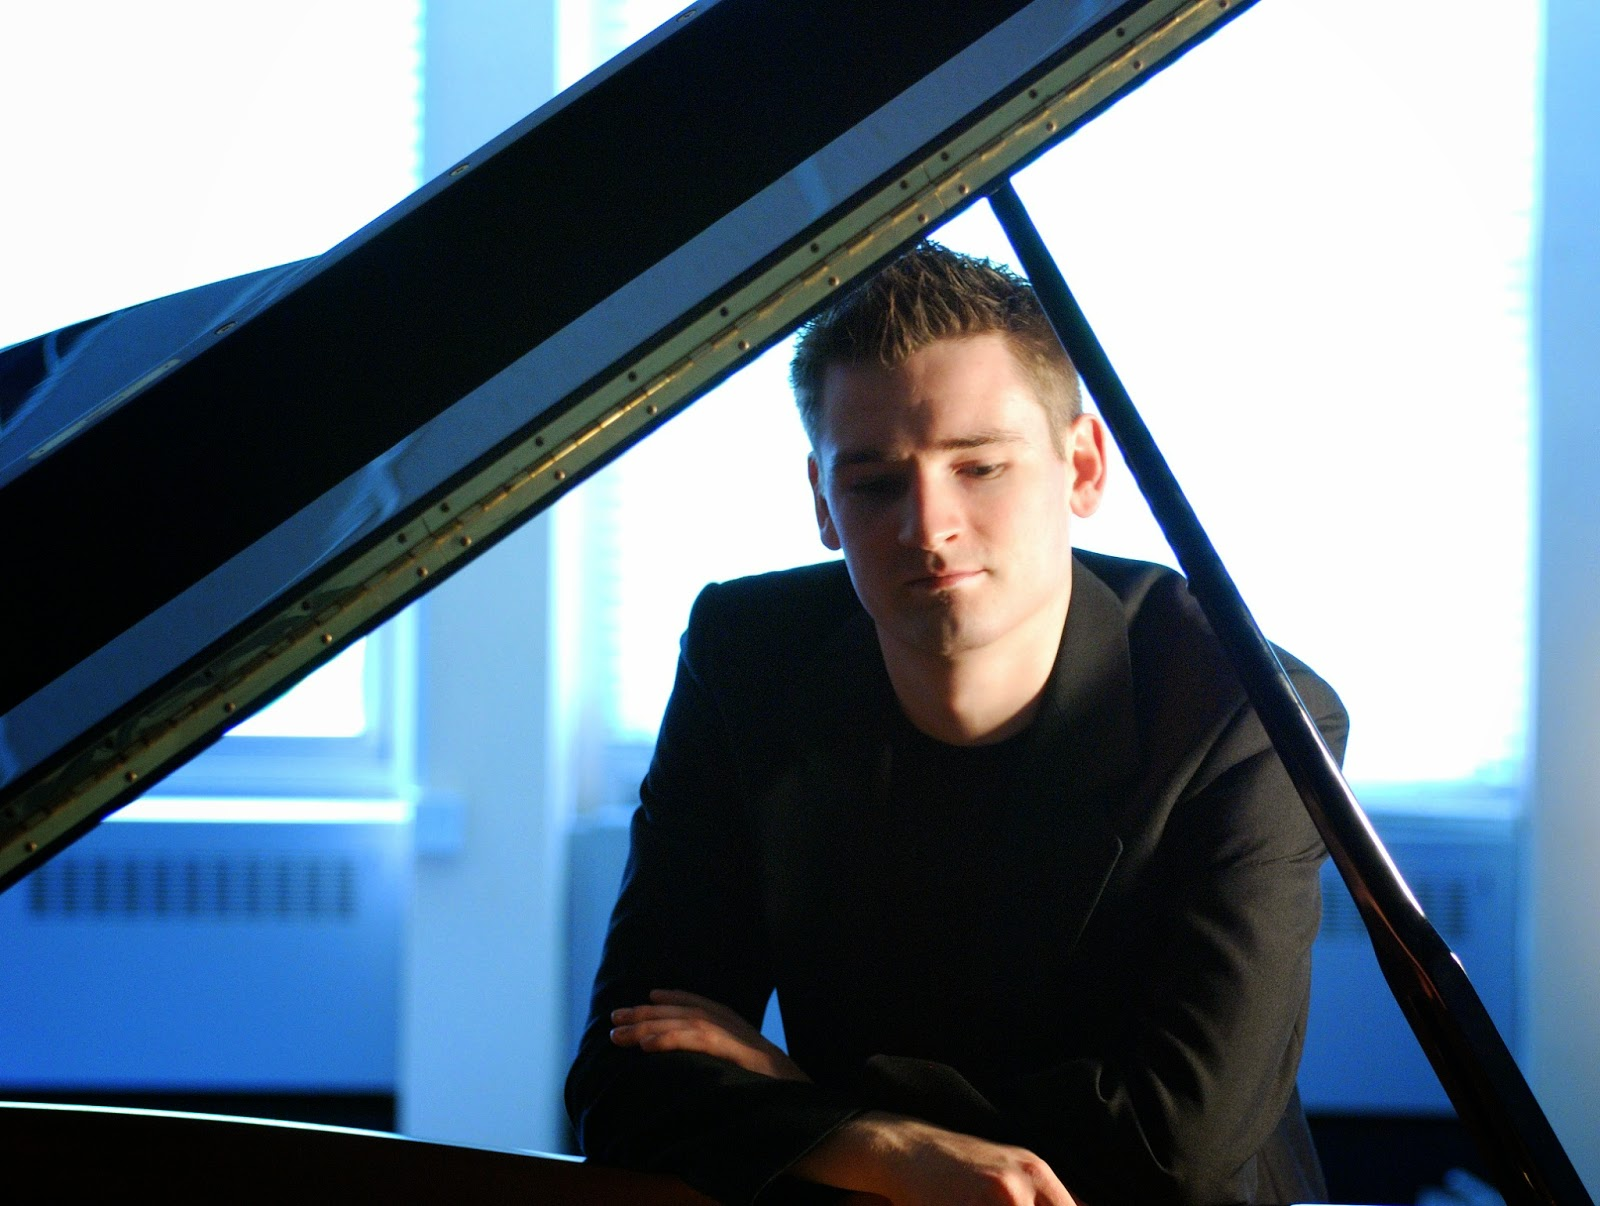 Castleconnell welcomes pianist Michael McHale